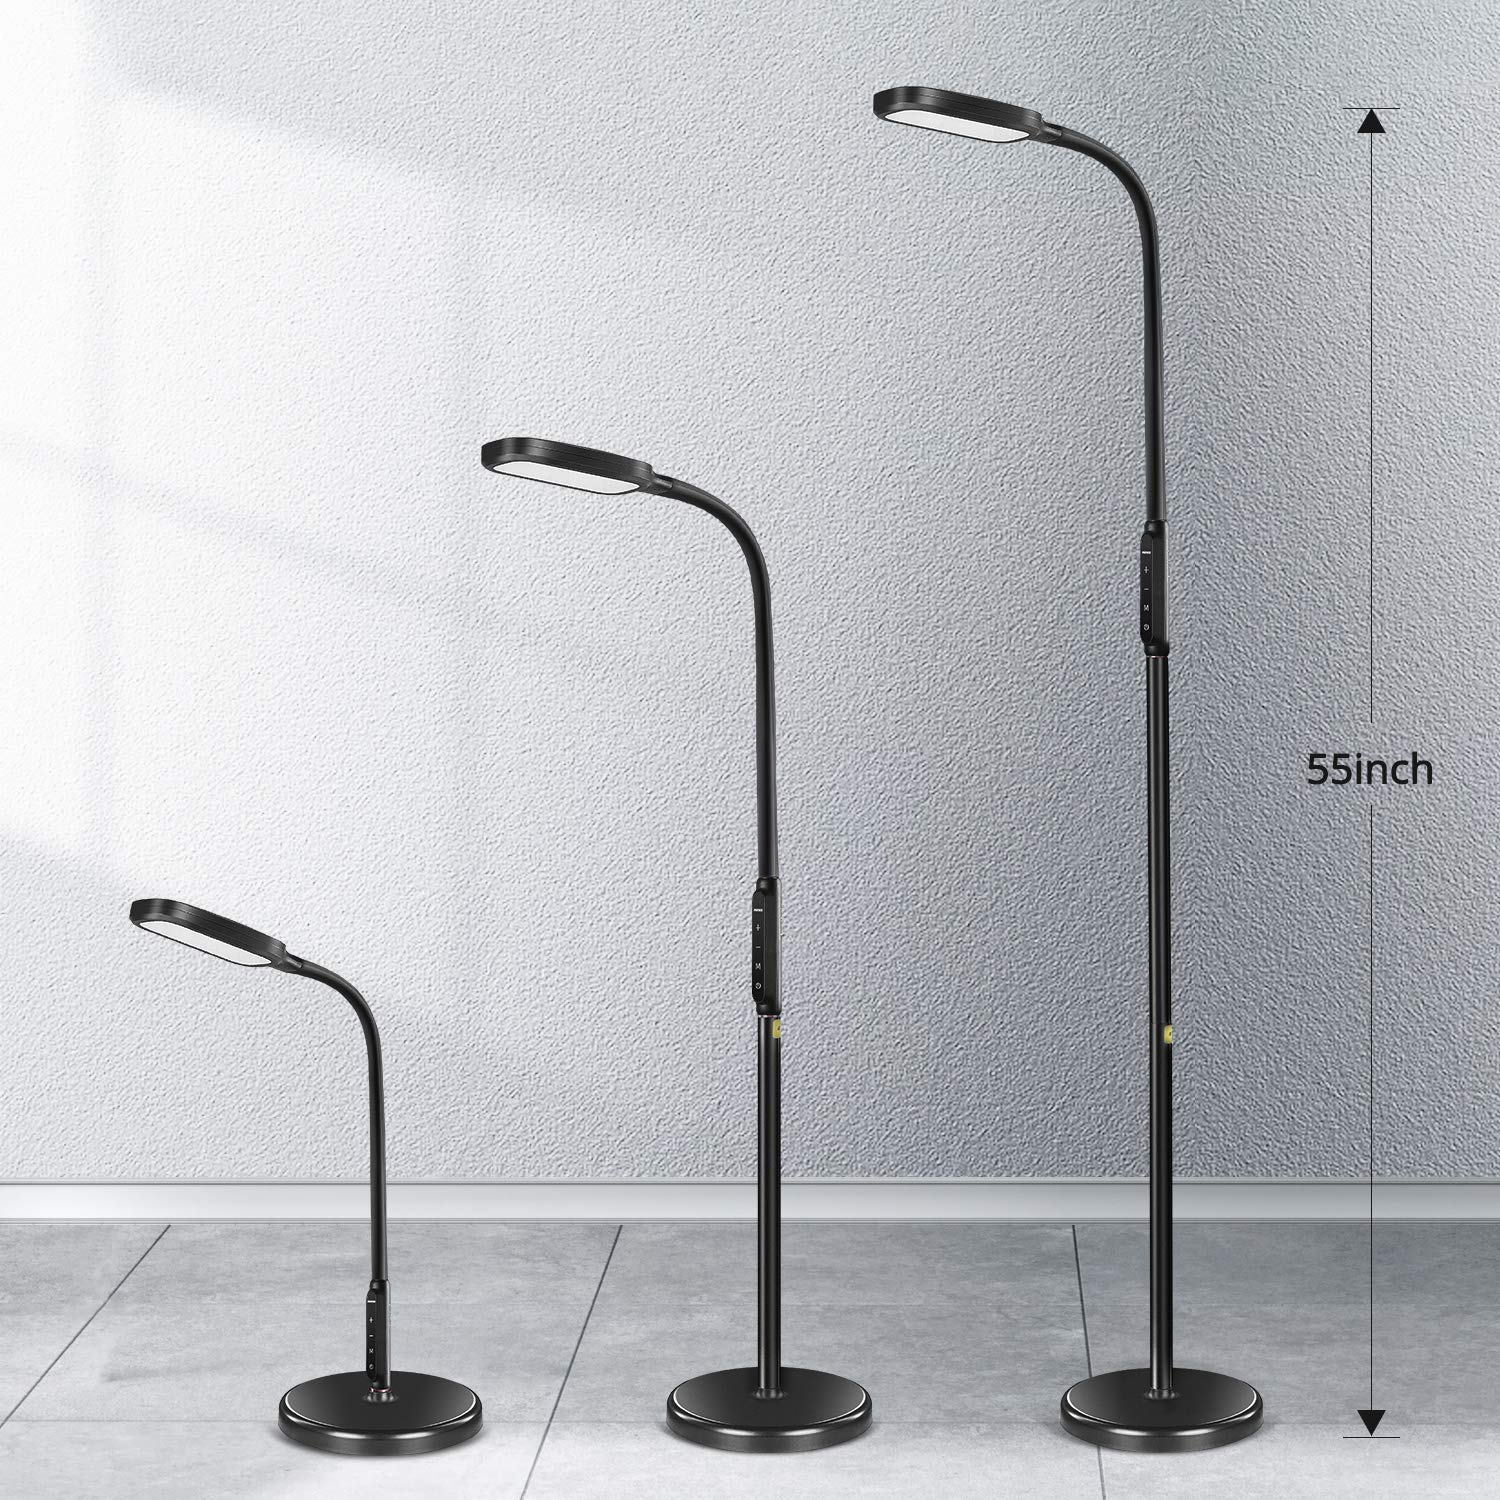 Miroco LED Floor Lamp with 5 Brightness Levels & 3 Color Temperatures